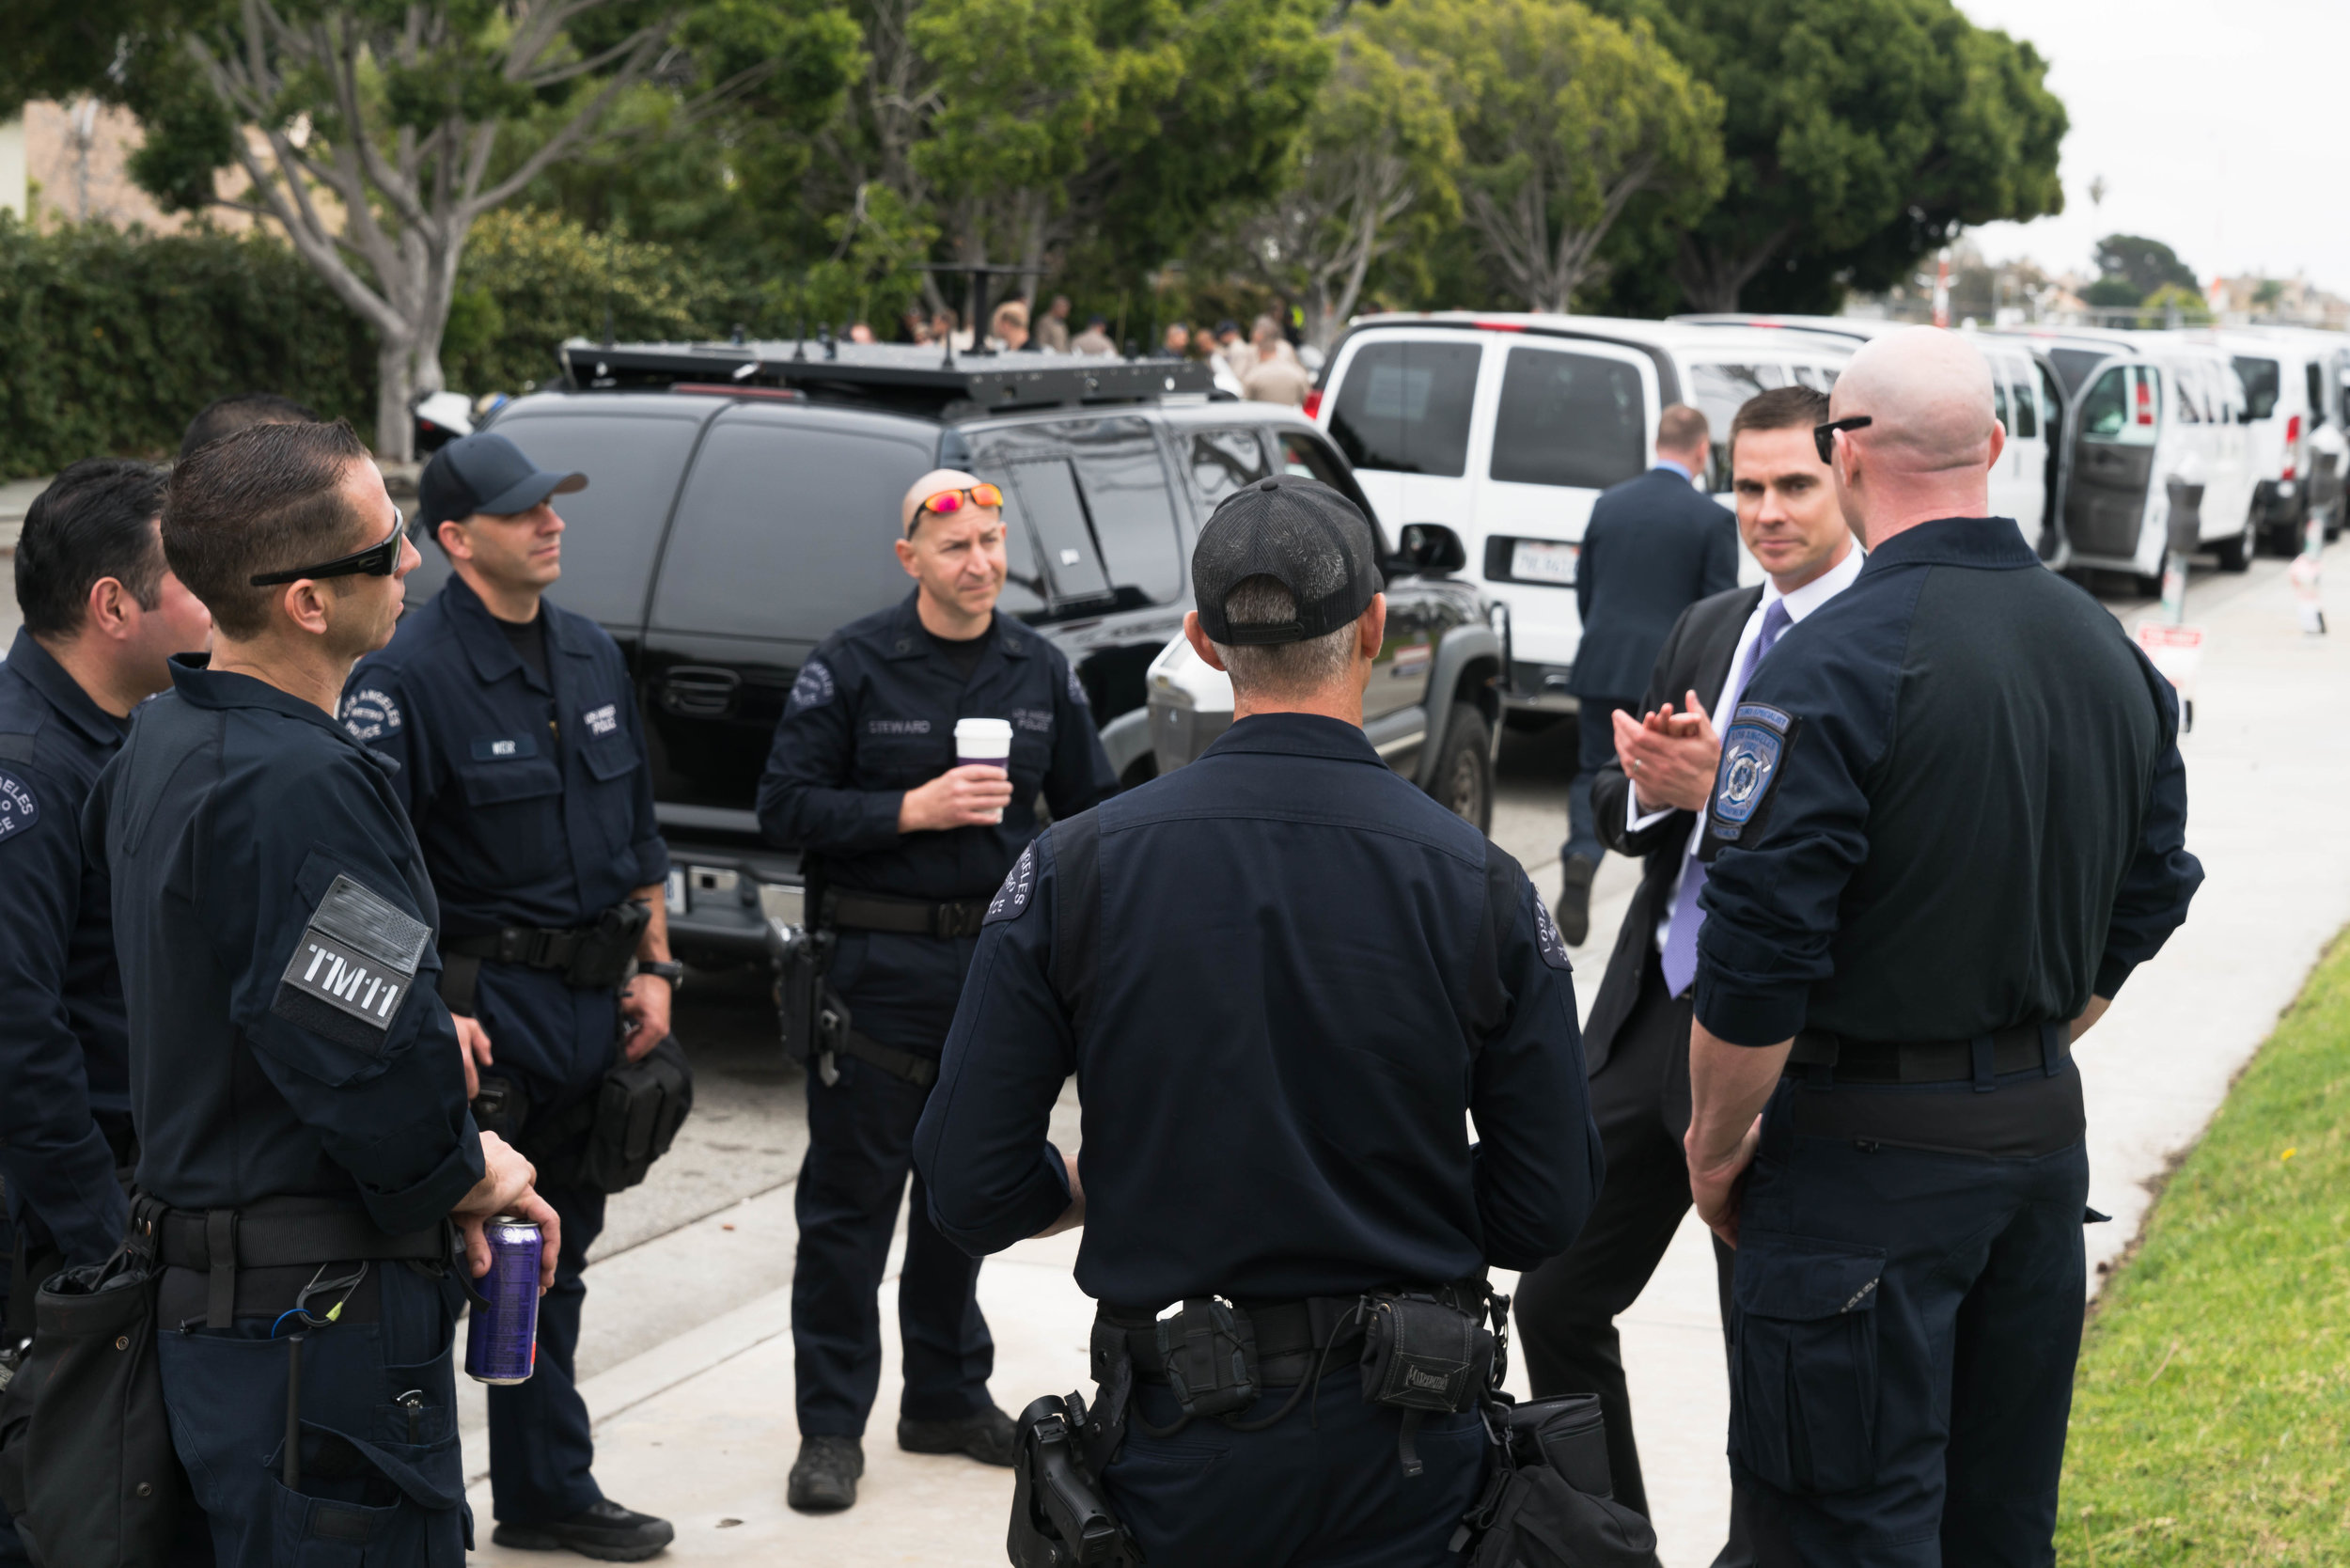 A US Secret Service official talks with members of the Los Angeles Fire and Police Departments shortly before President Donald Trump's arrival at Santa Monica Airport in Santa Monica, California on Tuesday, March 13, 2018. It was Trump's first visit to California since taking office in January 2017. (Helena Sung / Corsair Photo)